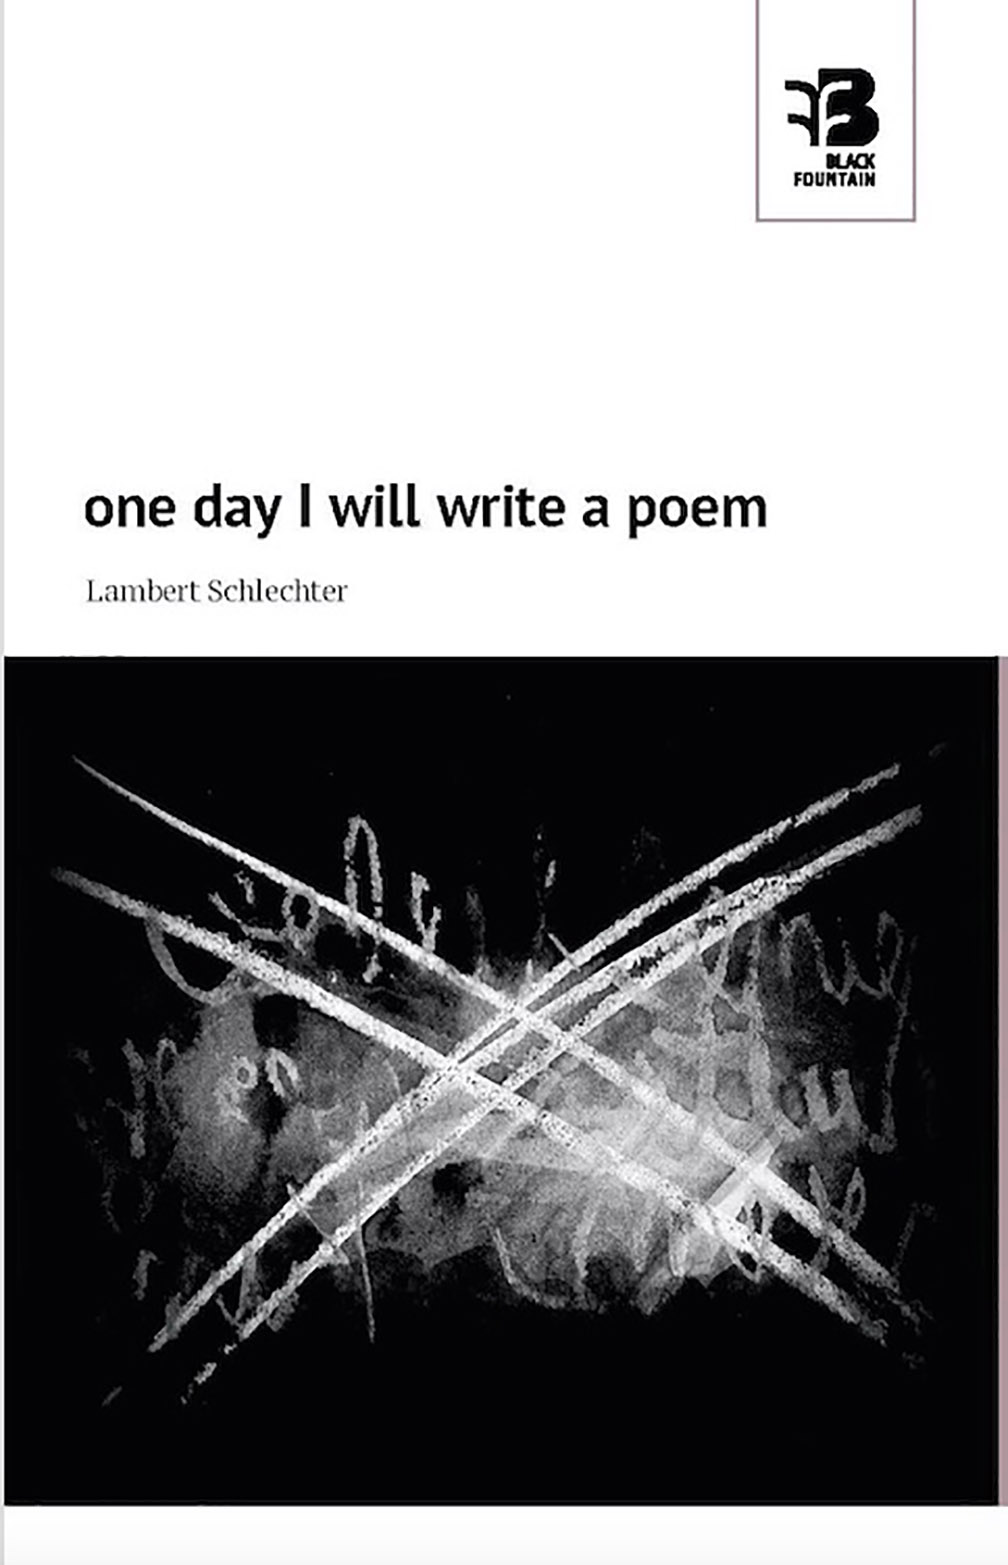 one day I will write a poem